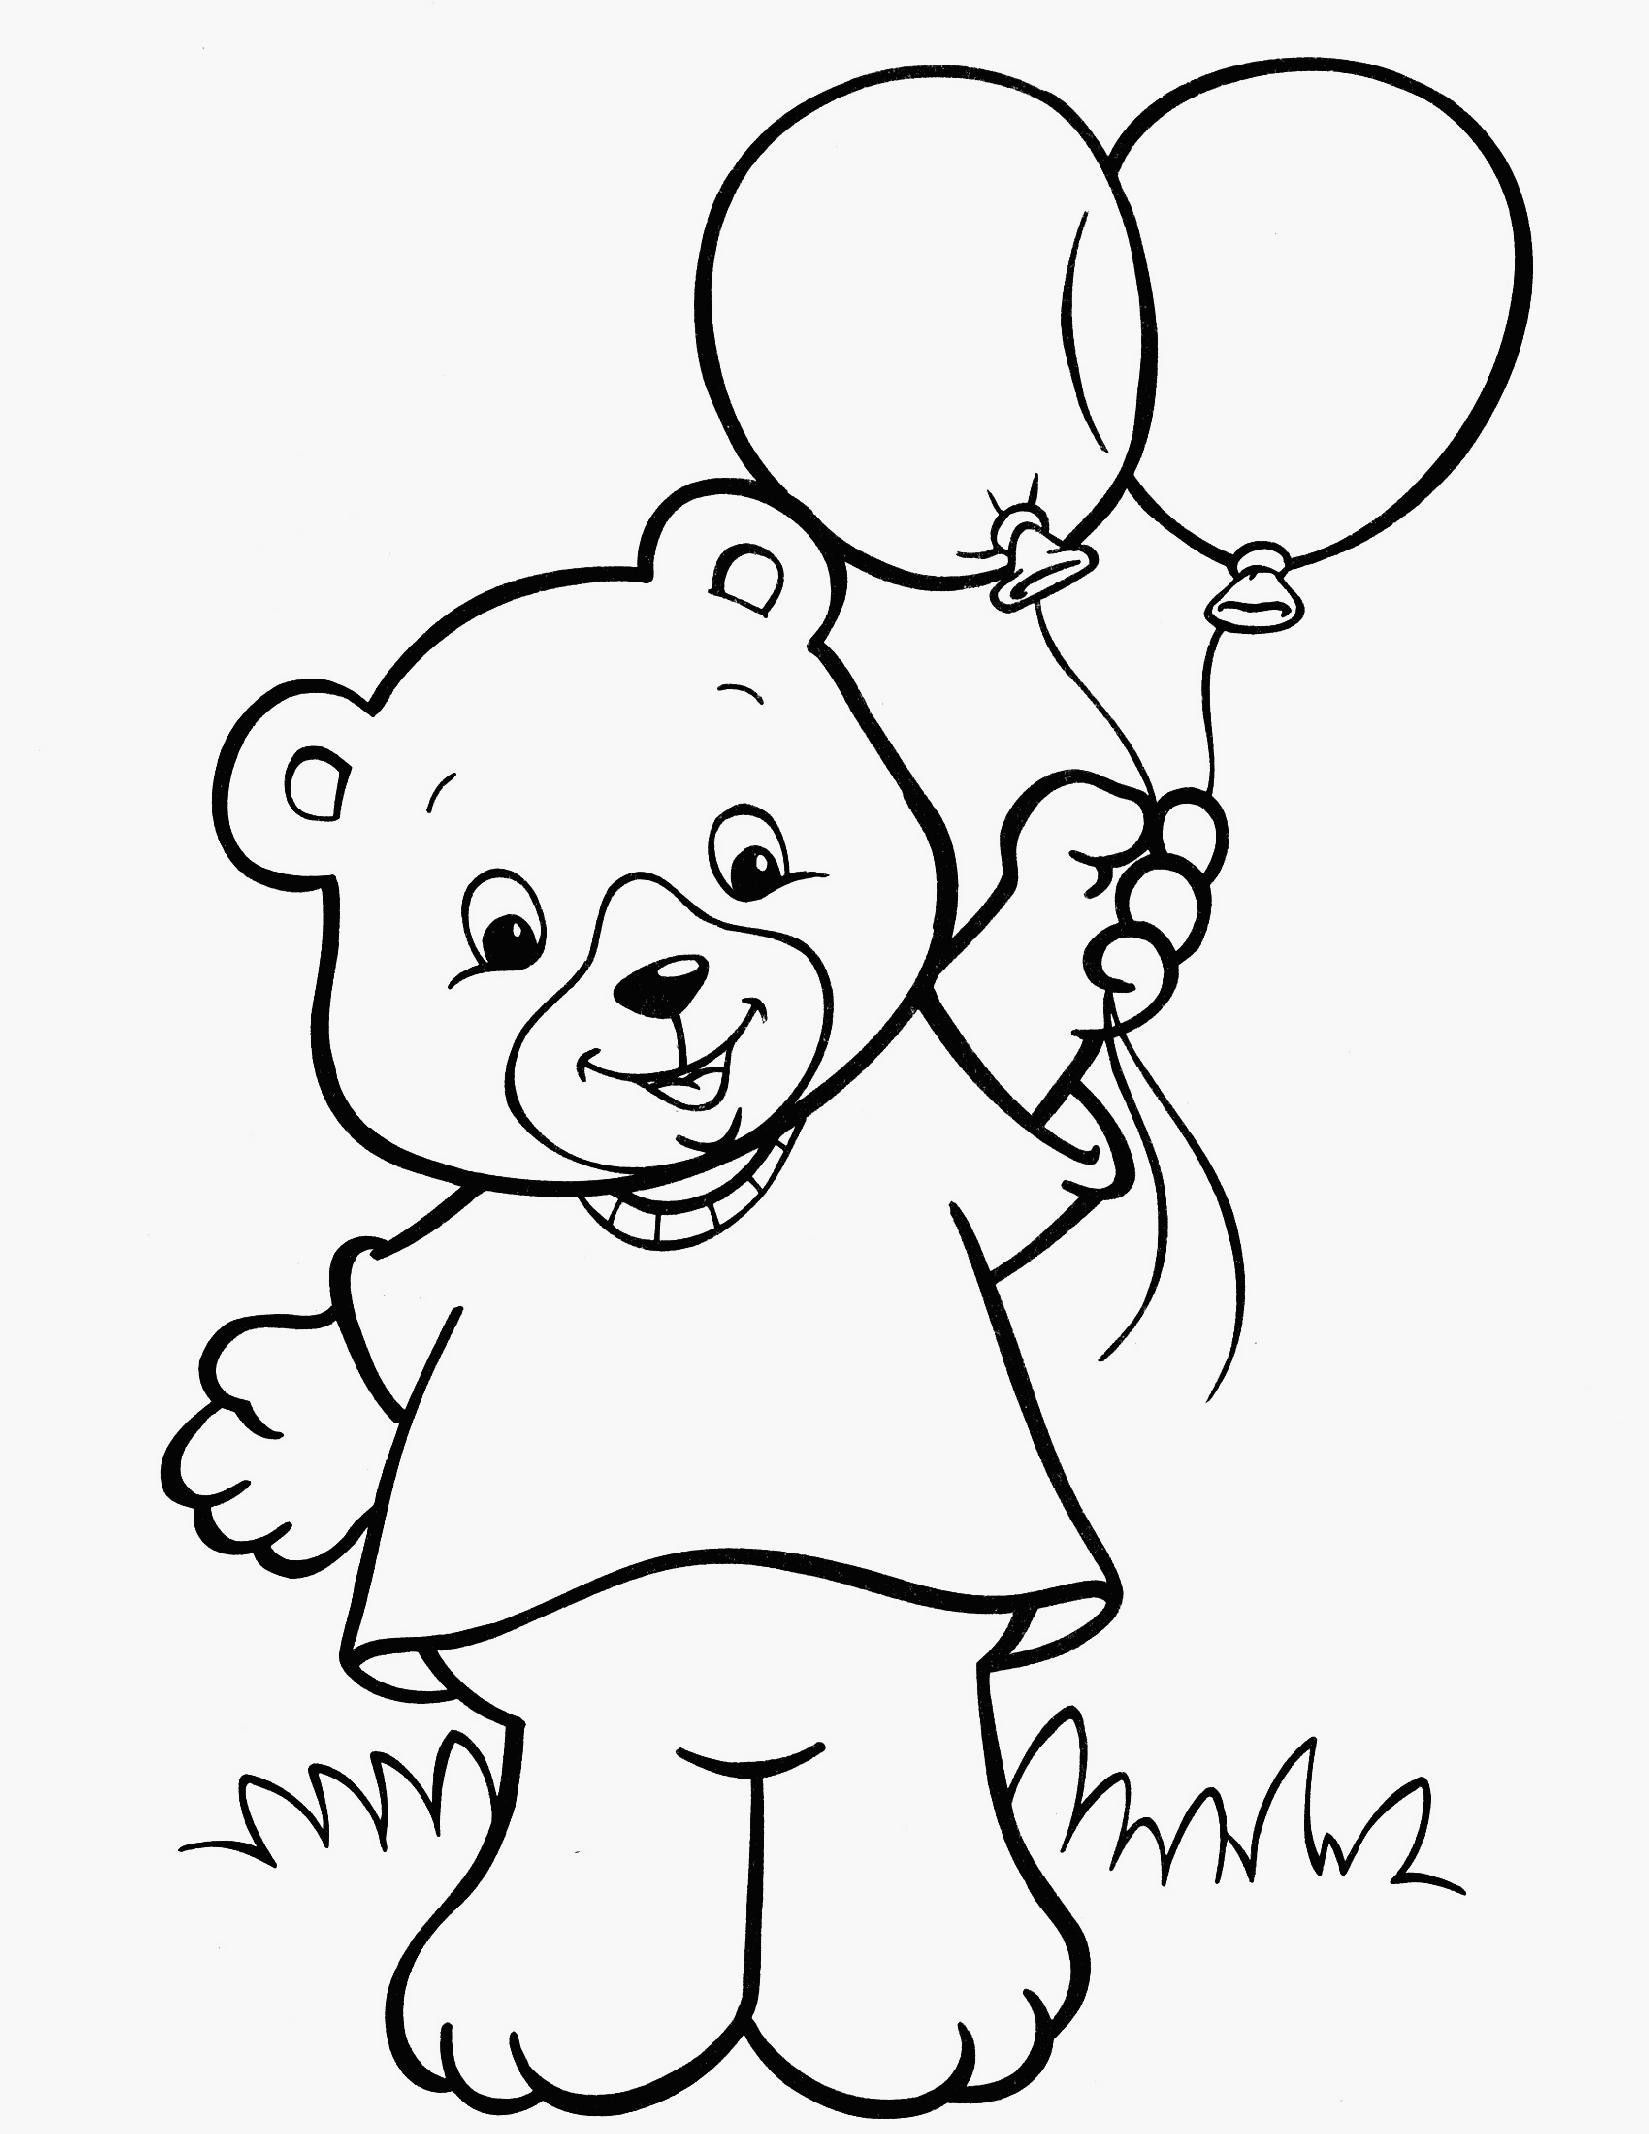 Coloring pages for 34 Years Old Only Coloring Pages